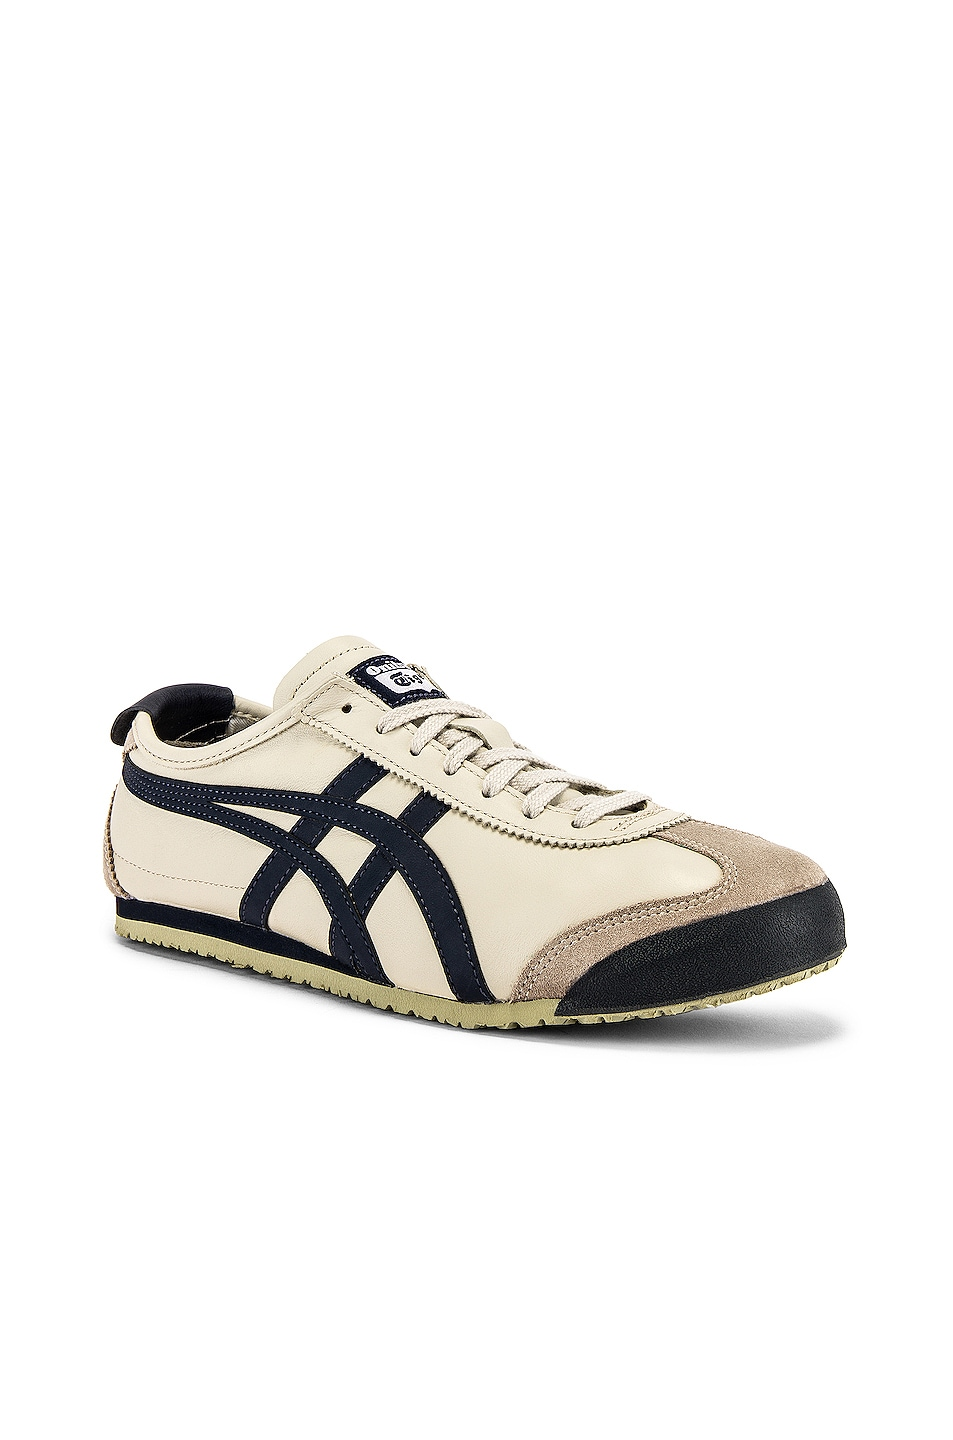 Image 1 of Onitsuka Tiger Mexico 66 in Birch & Indian Ink & Latte